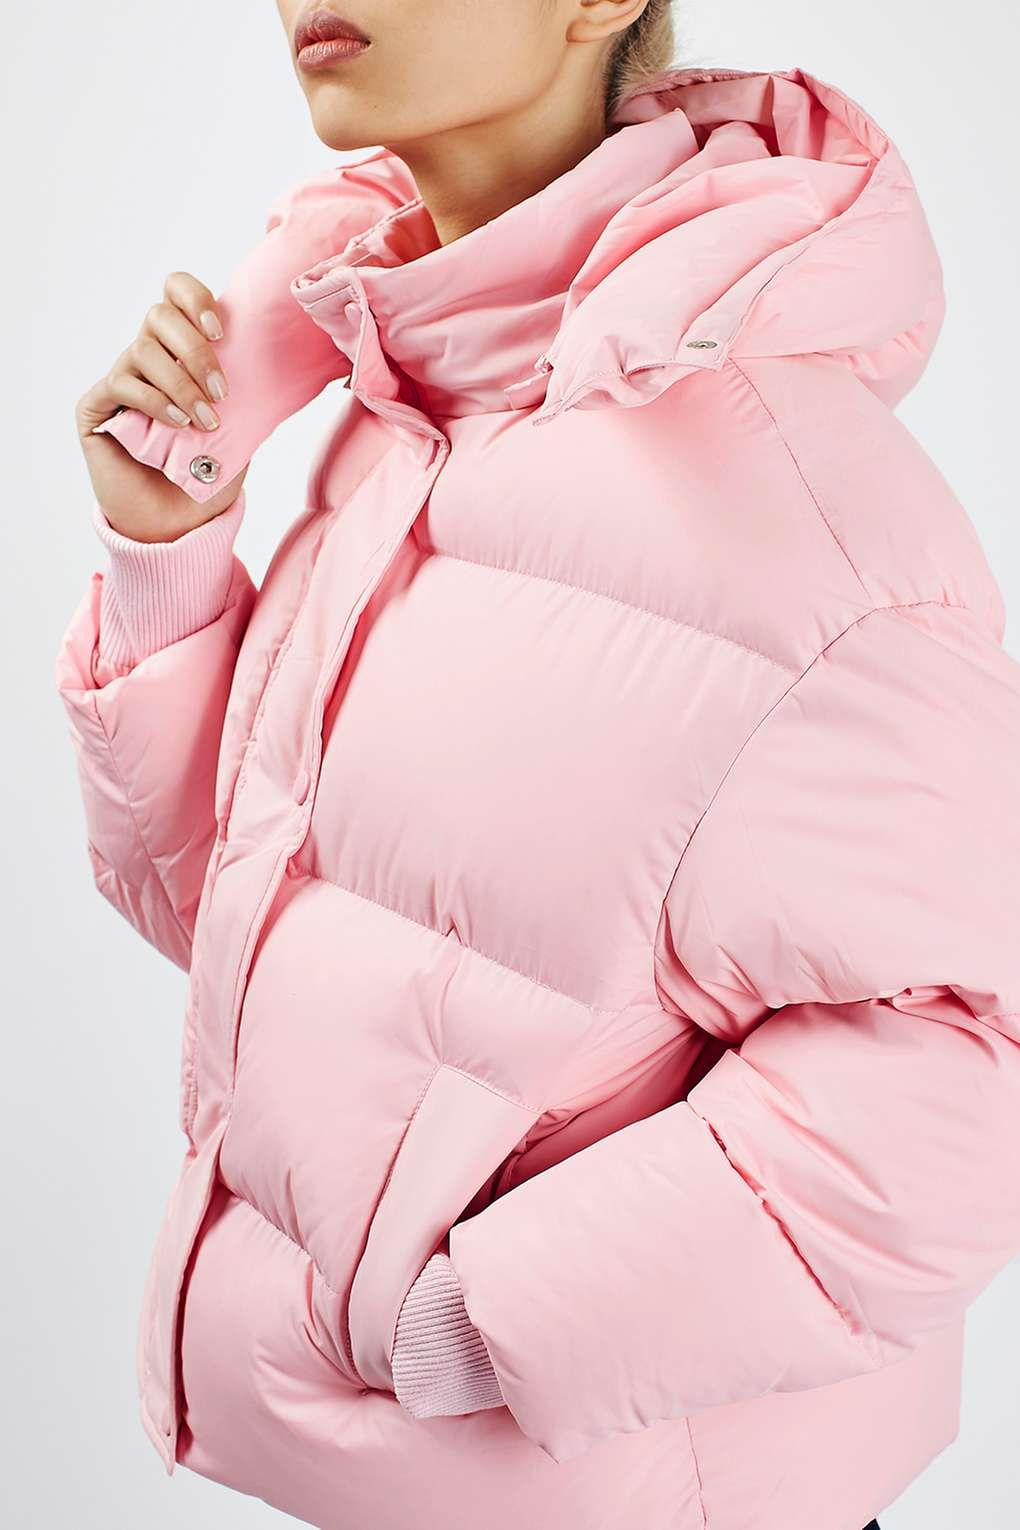 The Puffball Puffer By Boutique New In This Week New In Topshop Jackets Topshop Boutique Pink Fashion [ 1530 x 1020 Pixel ]